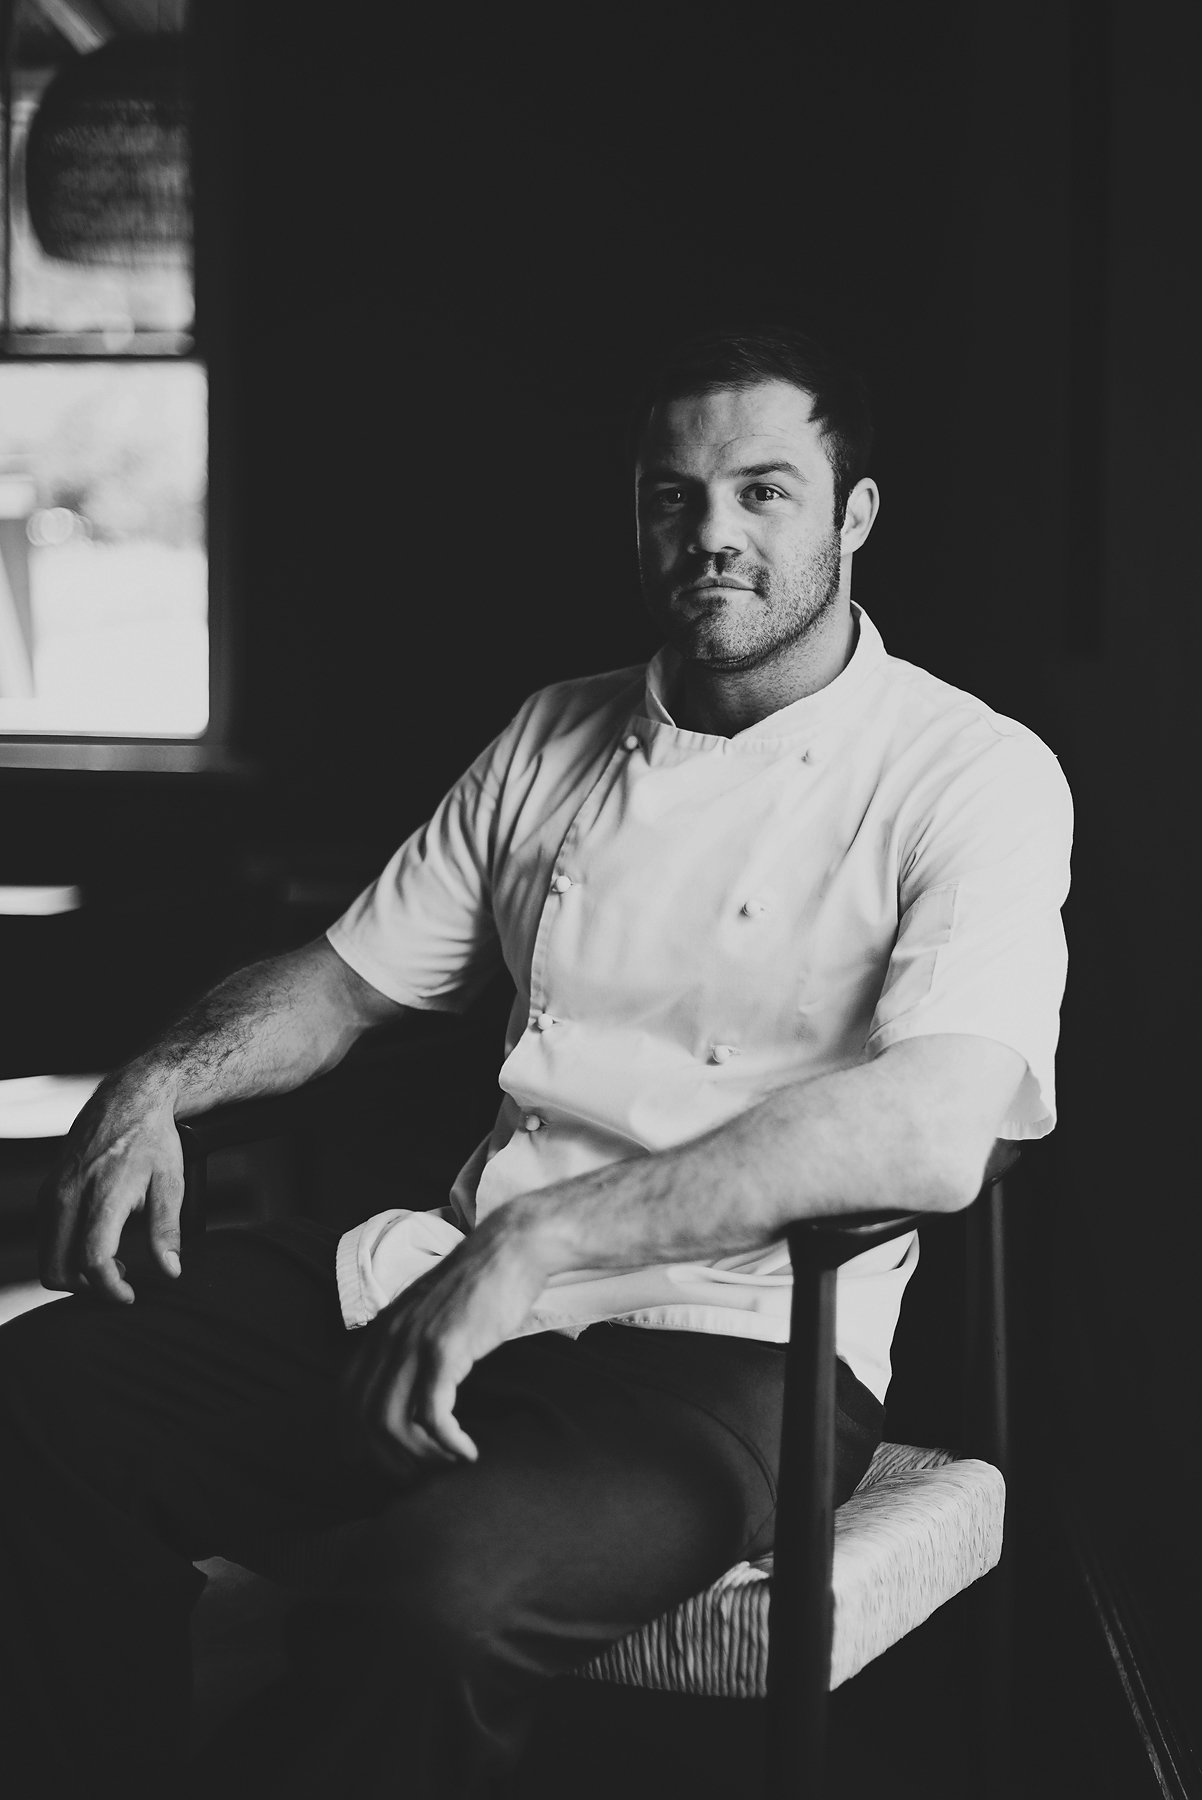 Chef Patron David Schneider - 'I want the diner to feel like they are at home. Maison means home, and I expect that level of comfort here, kick off your shoes and dine outside, sharing plates, drinking wine, and watching the world go by while being serenaded by chickens.We are here on a working farm, so you will feel what it's like to be here among us while dining right next to our kitchen at the foot of the Franschhoek mountains. My food isn't fancy, but it is a new type of luxury — fresh, sustainable, exciting new varieties and right out of the garden this morning. Our menu changes as seasonal ingredients do. We flow with the rhythms of nature and by the butcher's recommendation of alternative cuts of meat, and what the fishermen caught today. Our food is comforting and balanced, yet unrefined in its presentation. We don't want to feel polished, but rather a bit rough around the edges.'